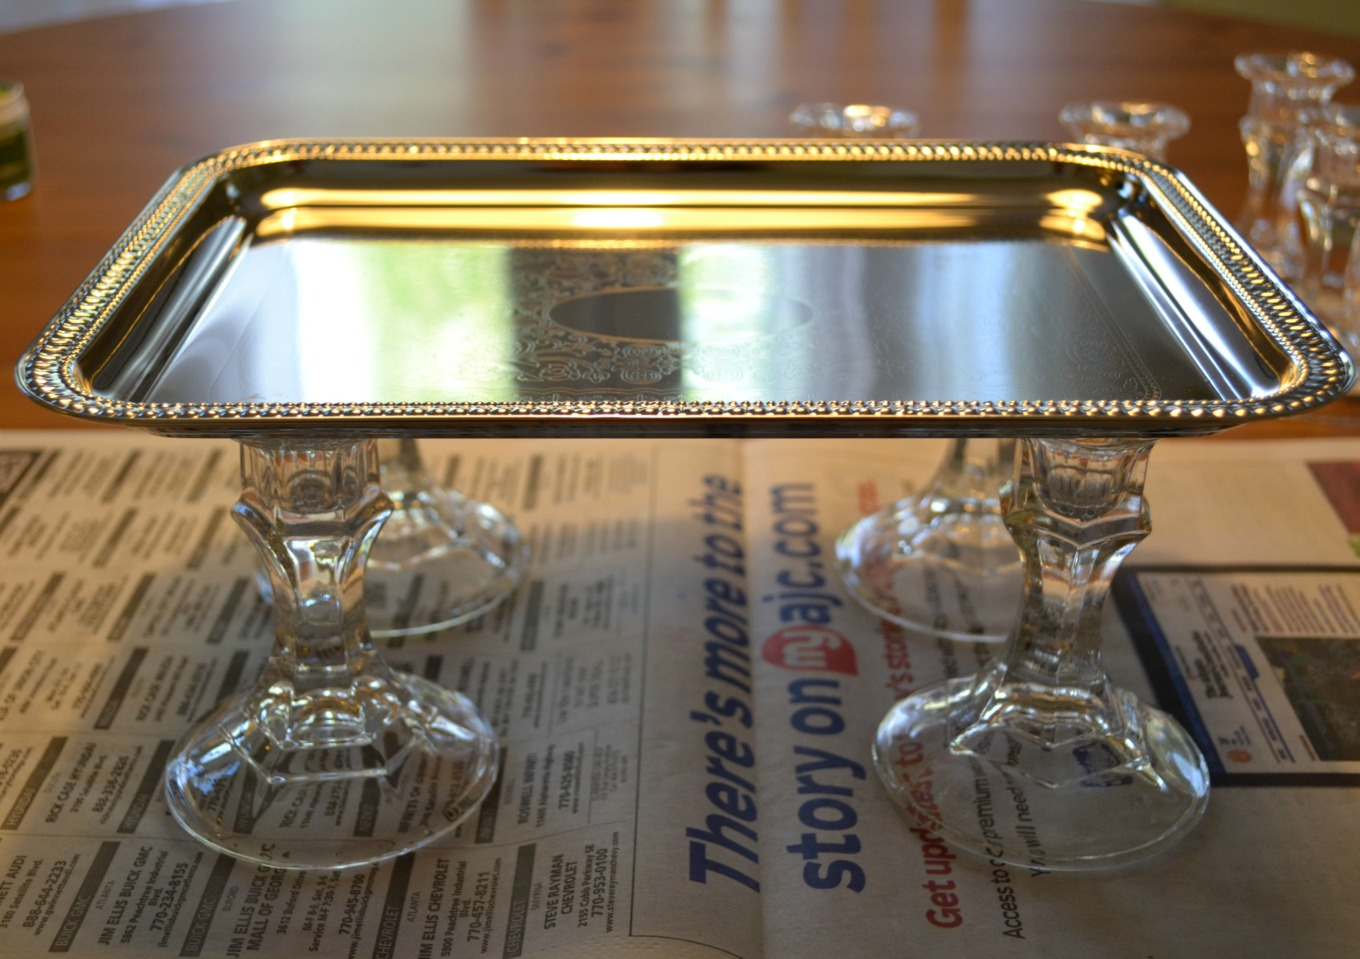 Dollar store tray on top of dollar store candlesticks creates a great bathroom tray - thediybungalow.com